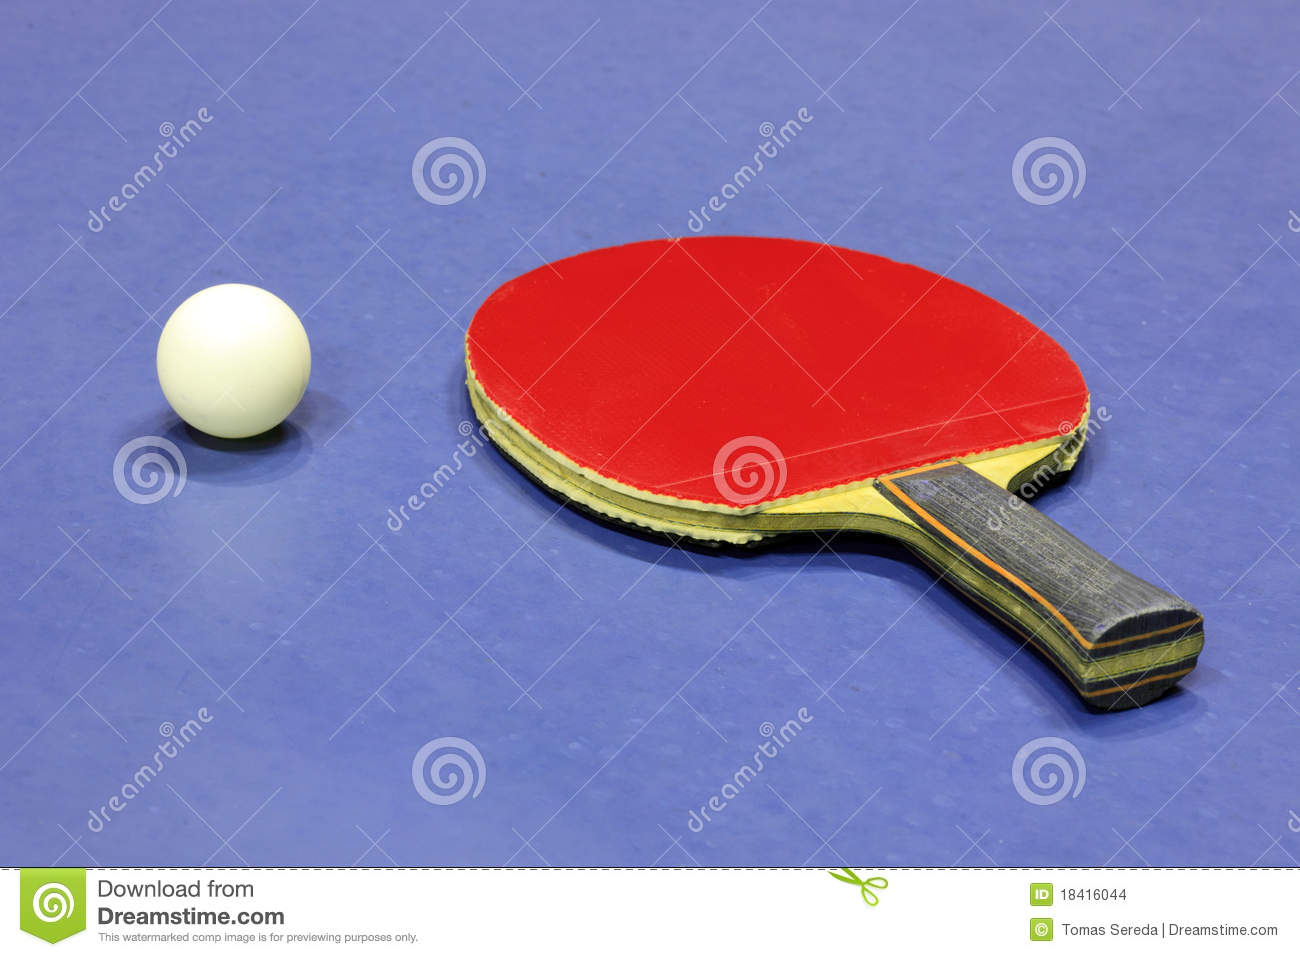 Equipment for table tennis stock photo image of black 18416044 - Equipment for table tennis ...